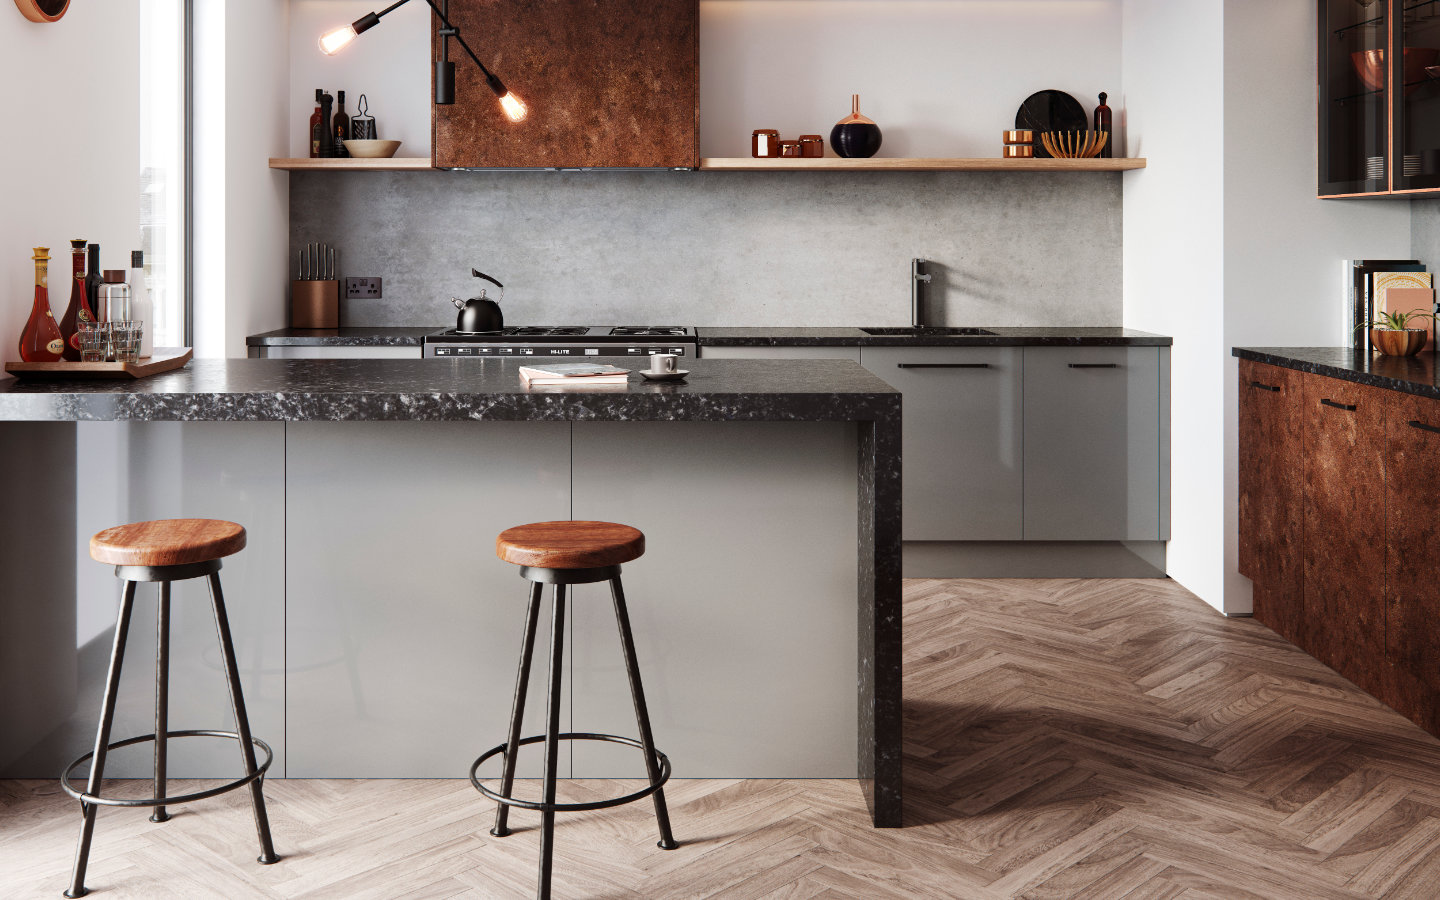 Cosdon painted kitchens from Burbidge